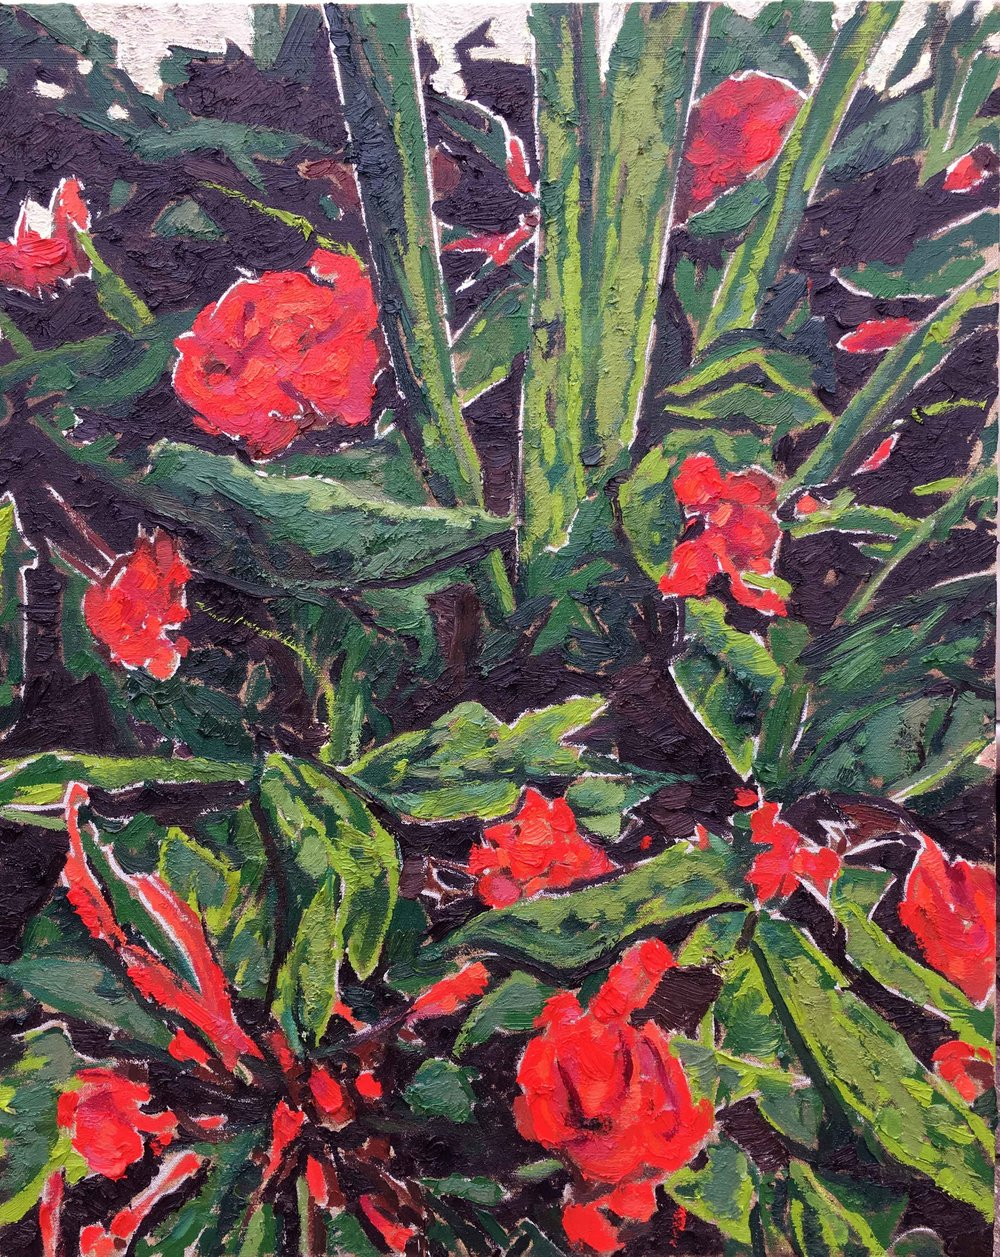 Wilted Petals, 2017, oil on canvas, 30 x 24 in.